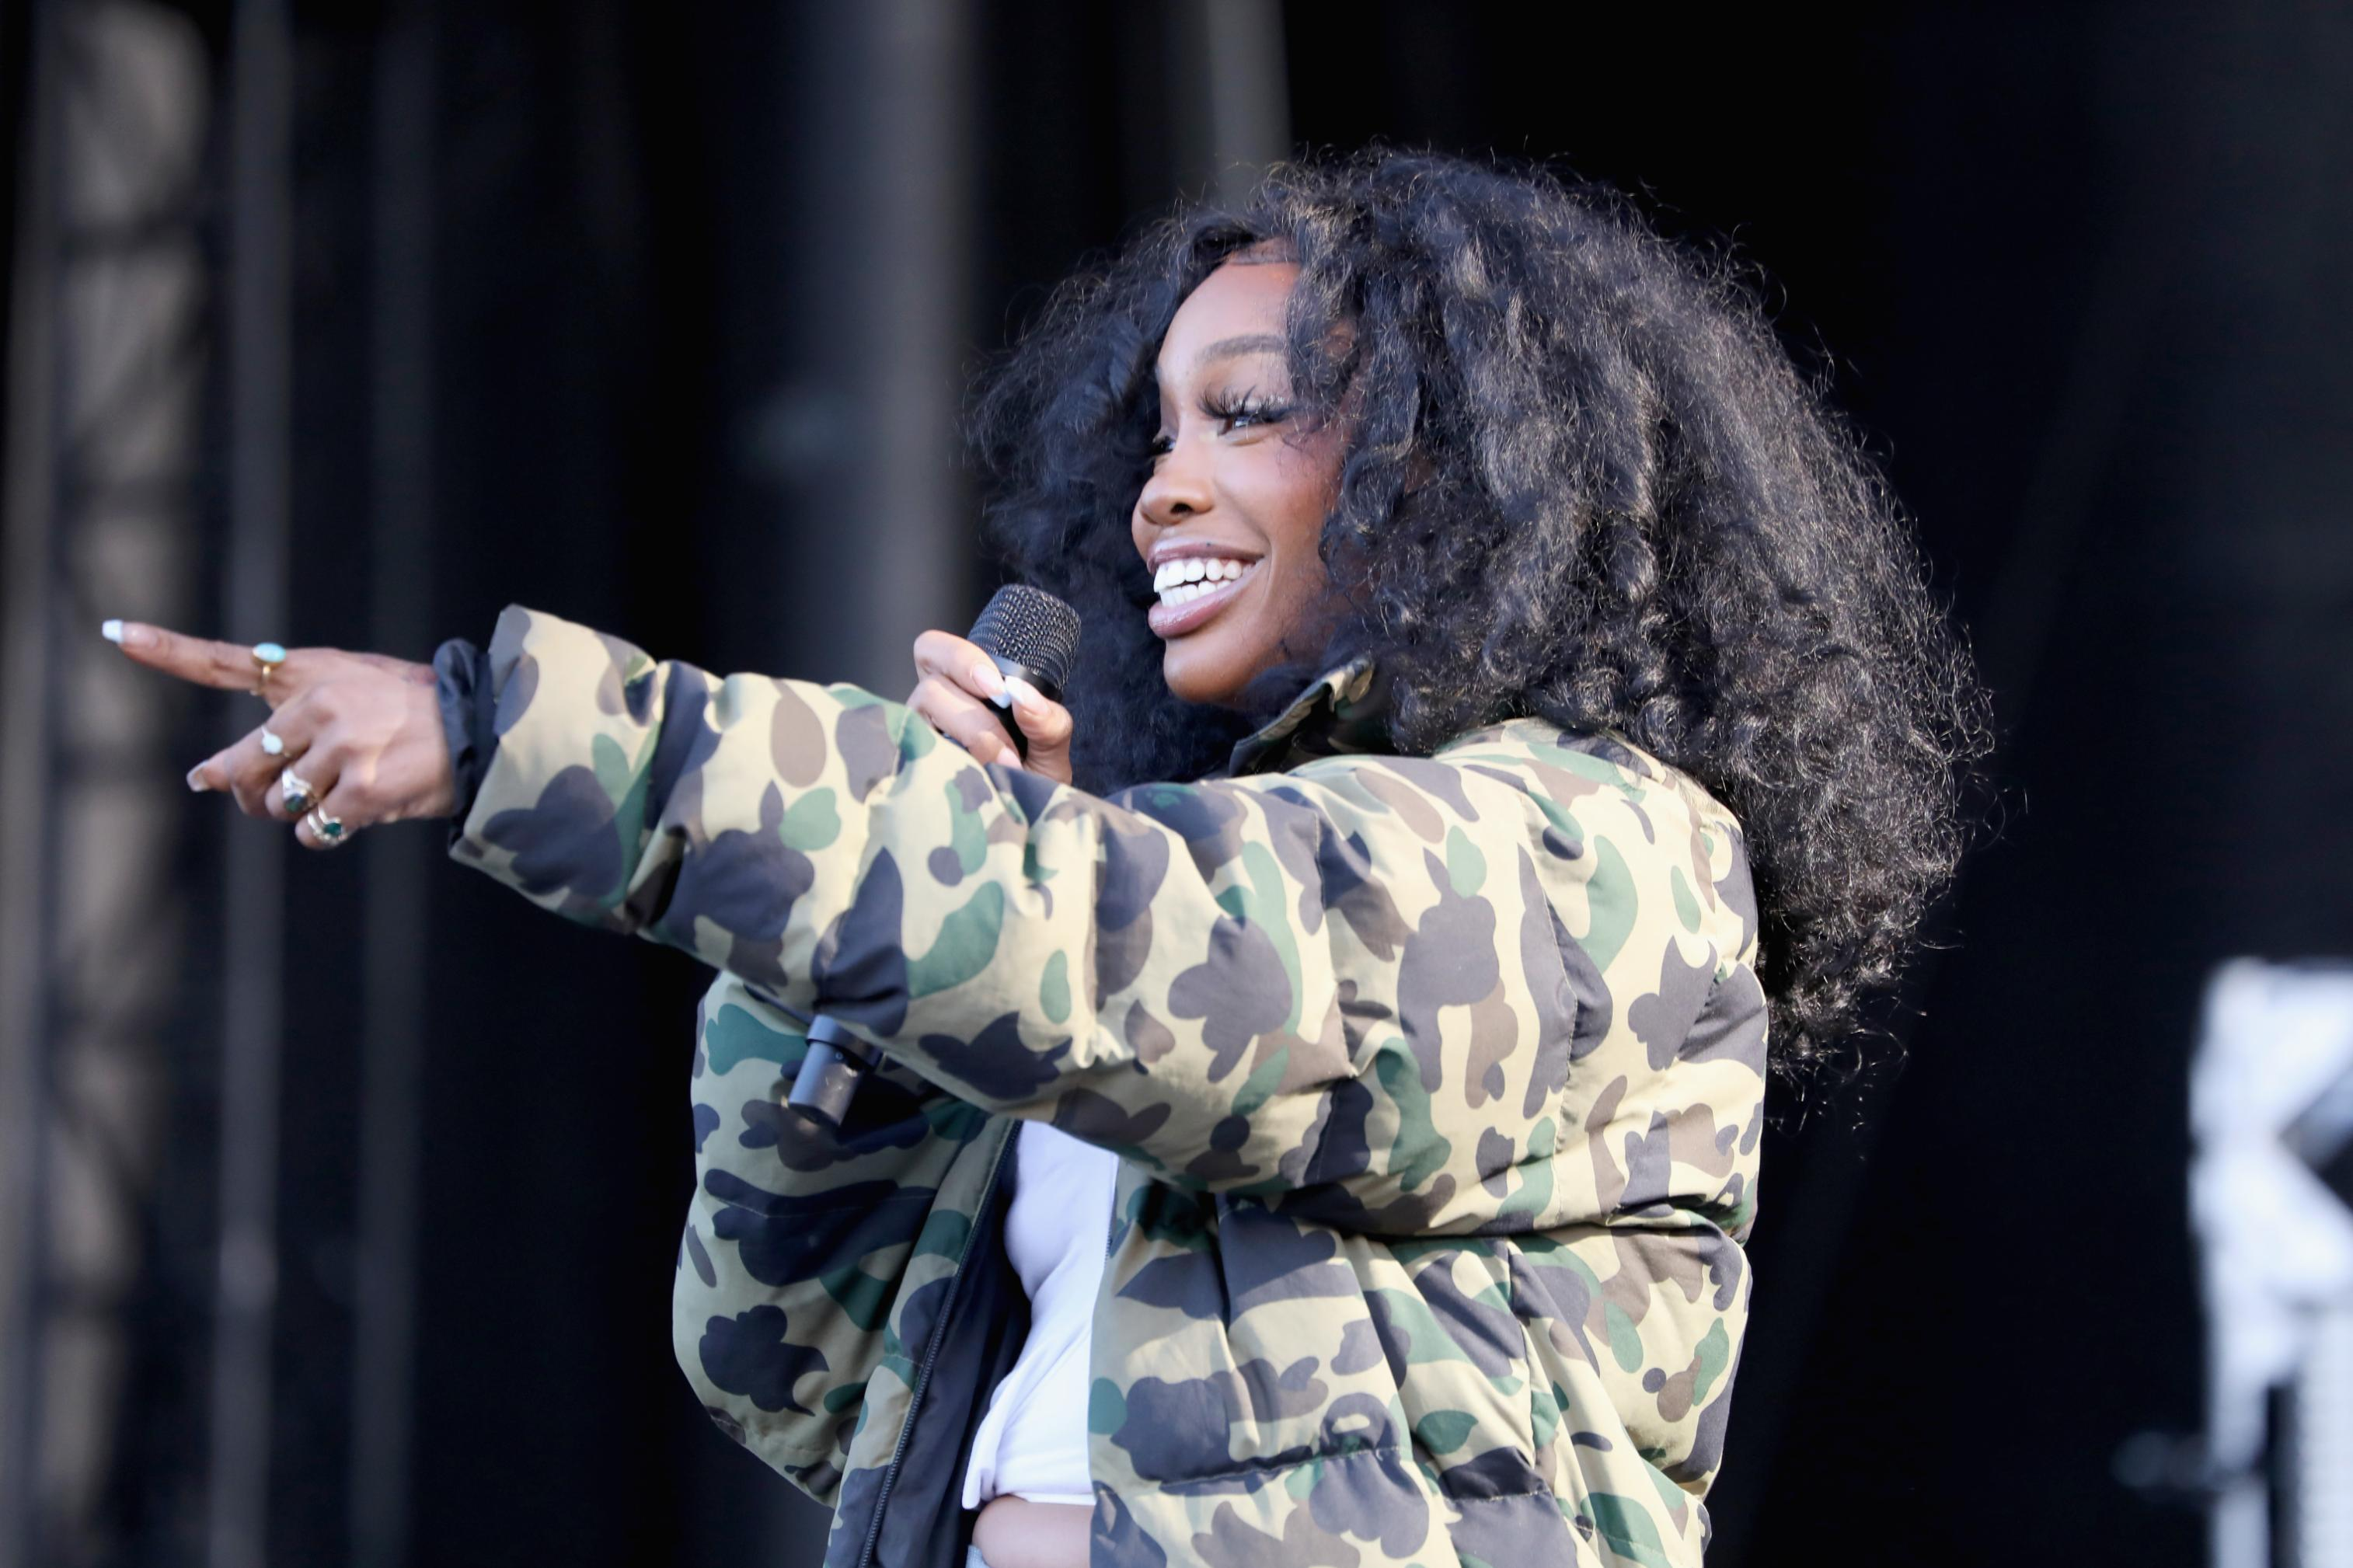 SZA sounds done with video interviews and photo shoots